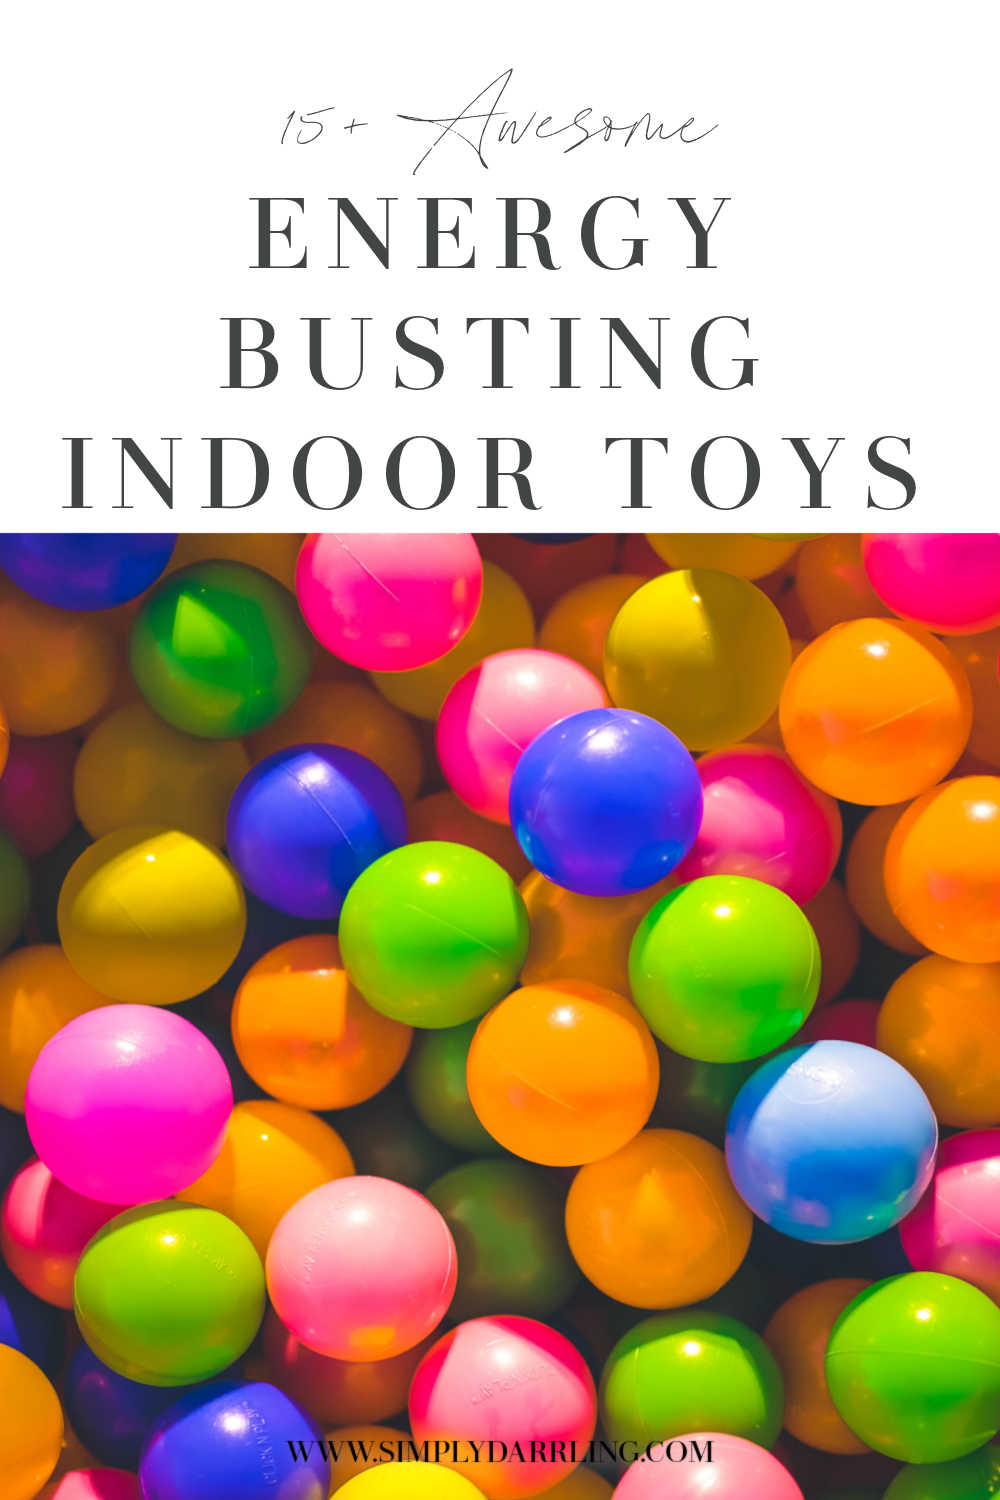 Indoor Toys that Get the Wiggles Out